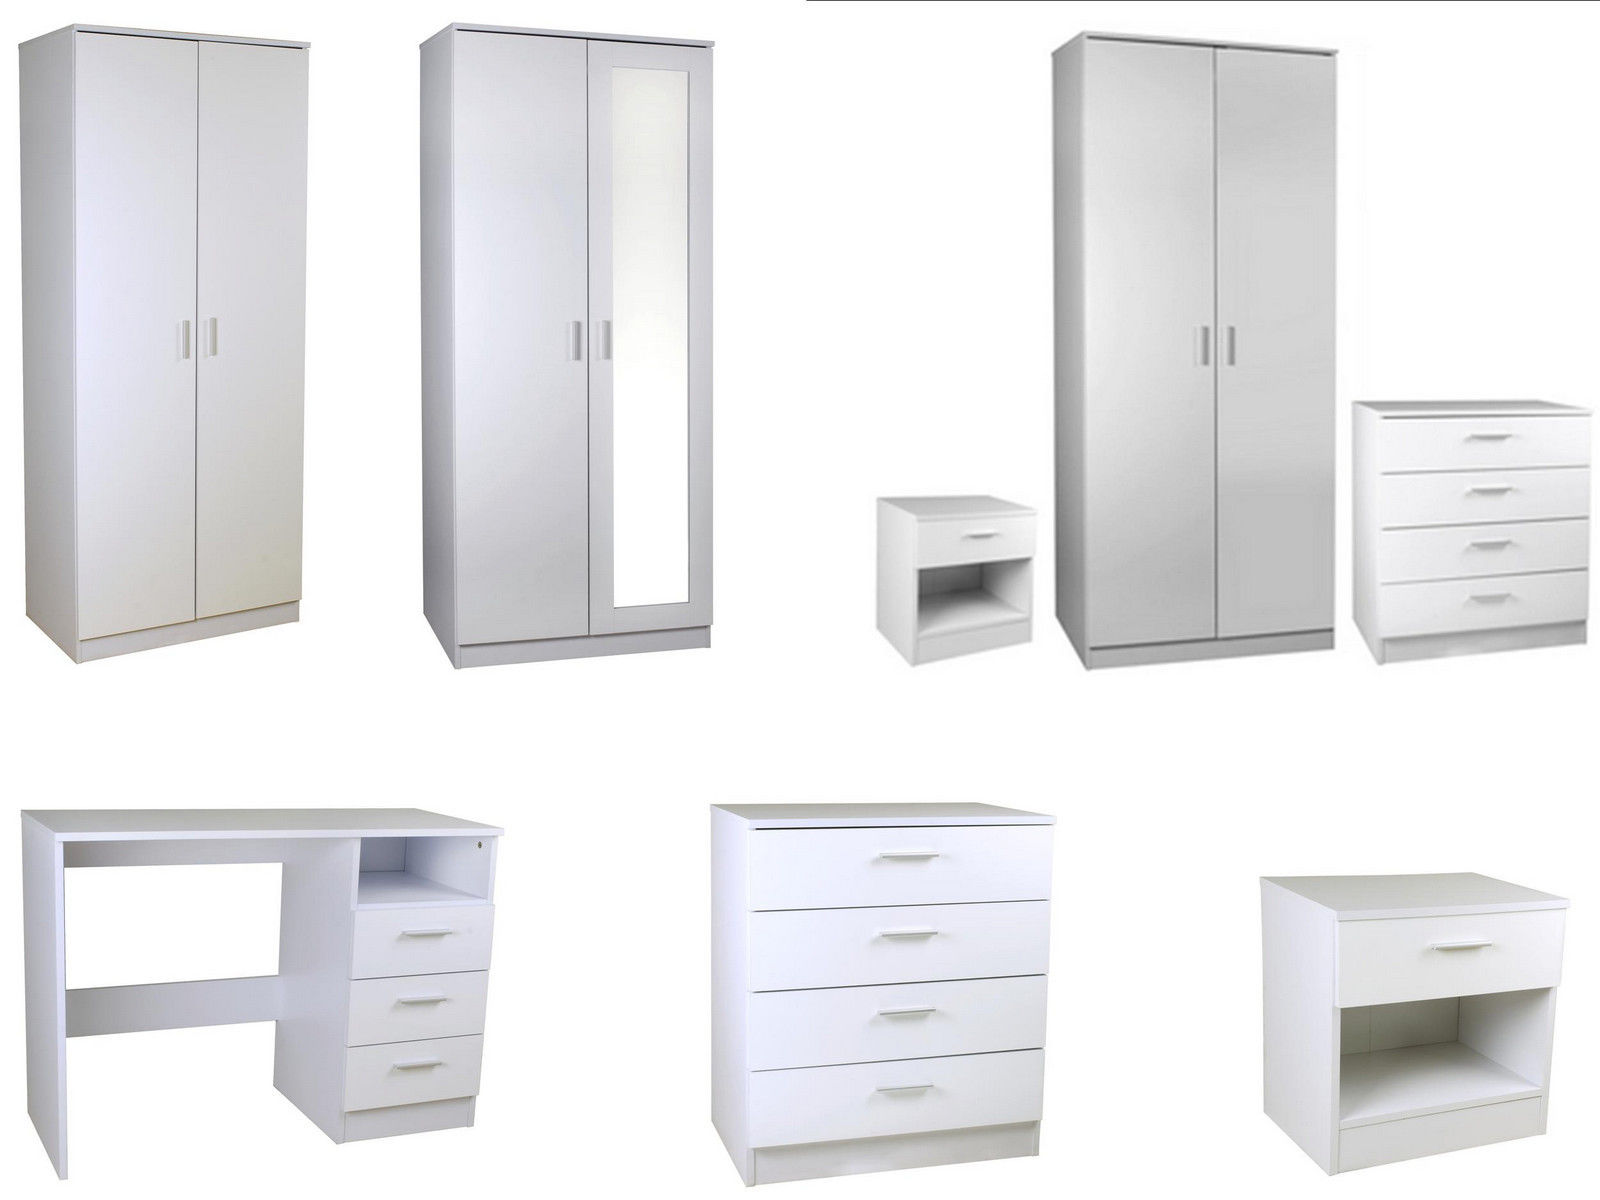 New caspian high gloss white bedroom furniture sets full for High gloss bedroom furniture